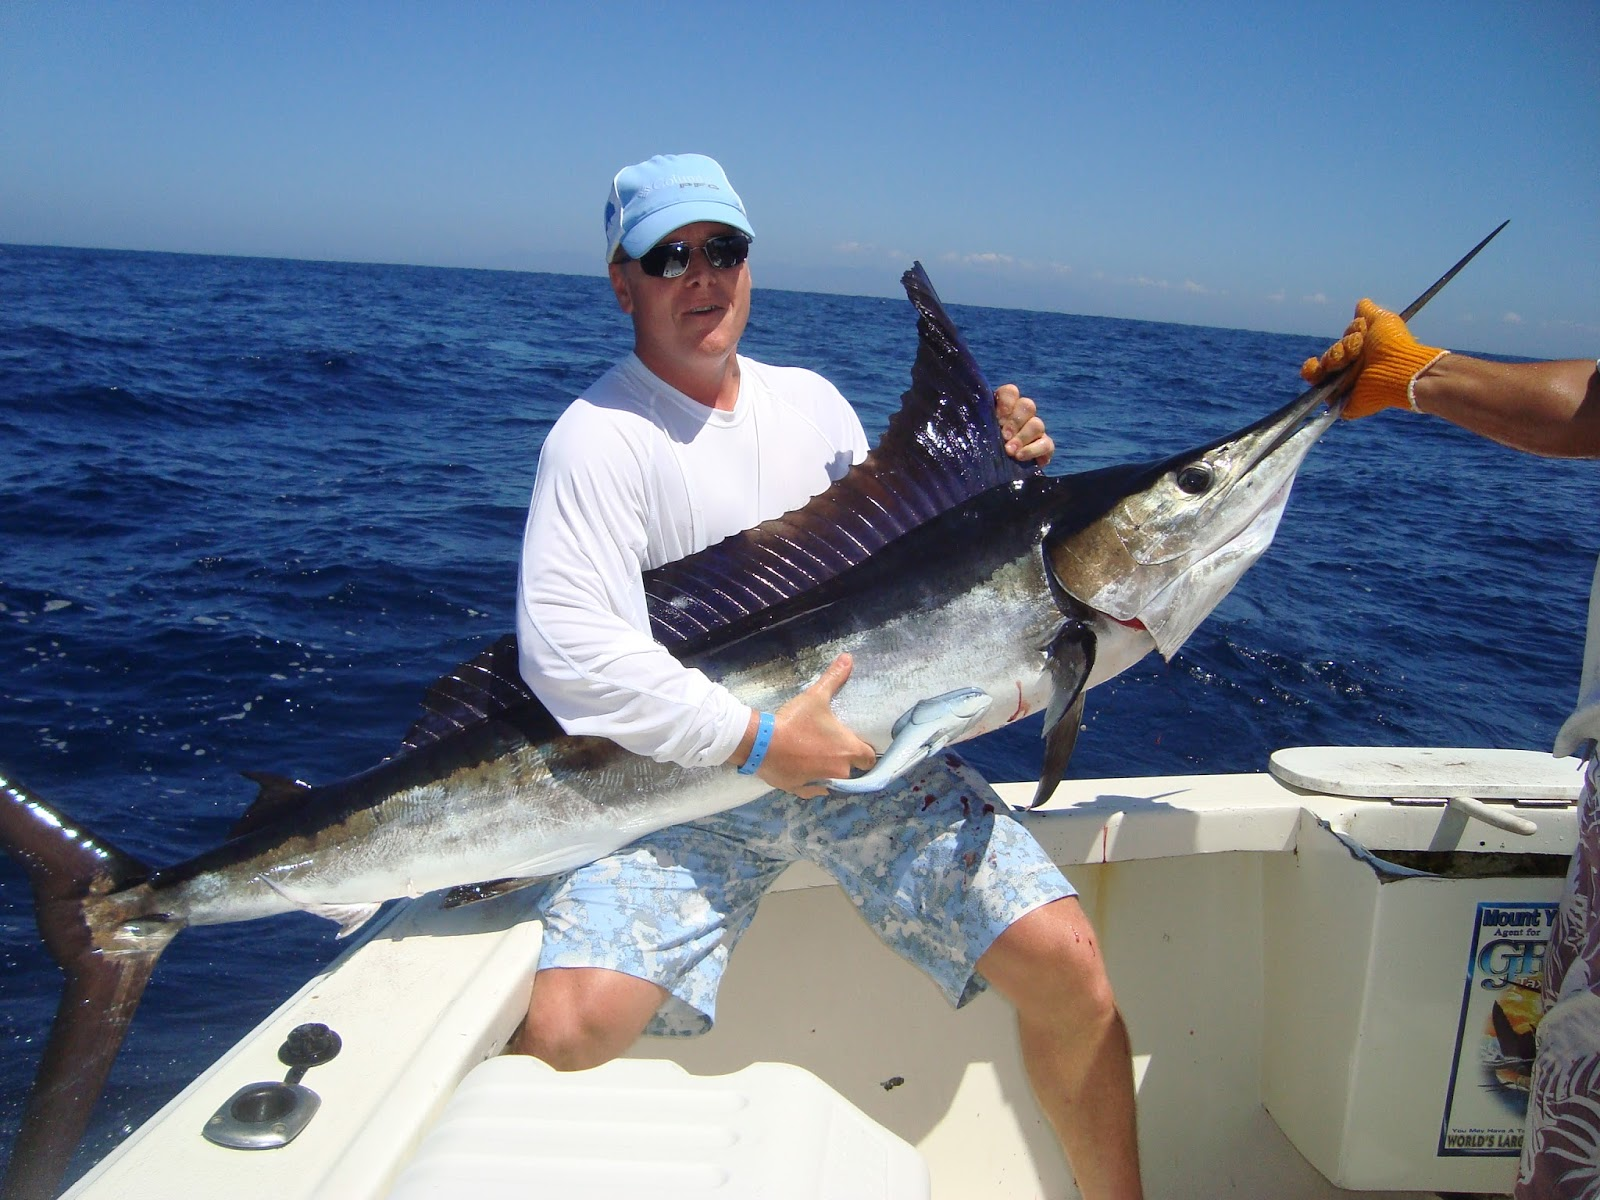 Pisces fleet sportfishing blog marlin bite continues in cabo for Pisces fishing cabo